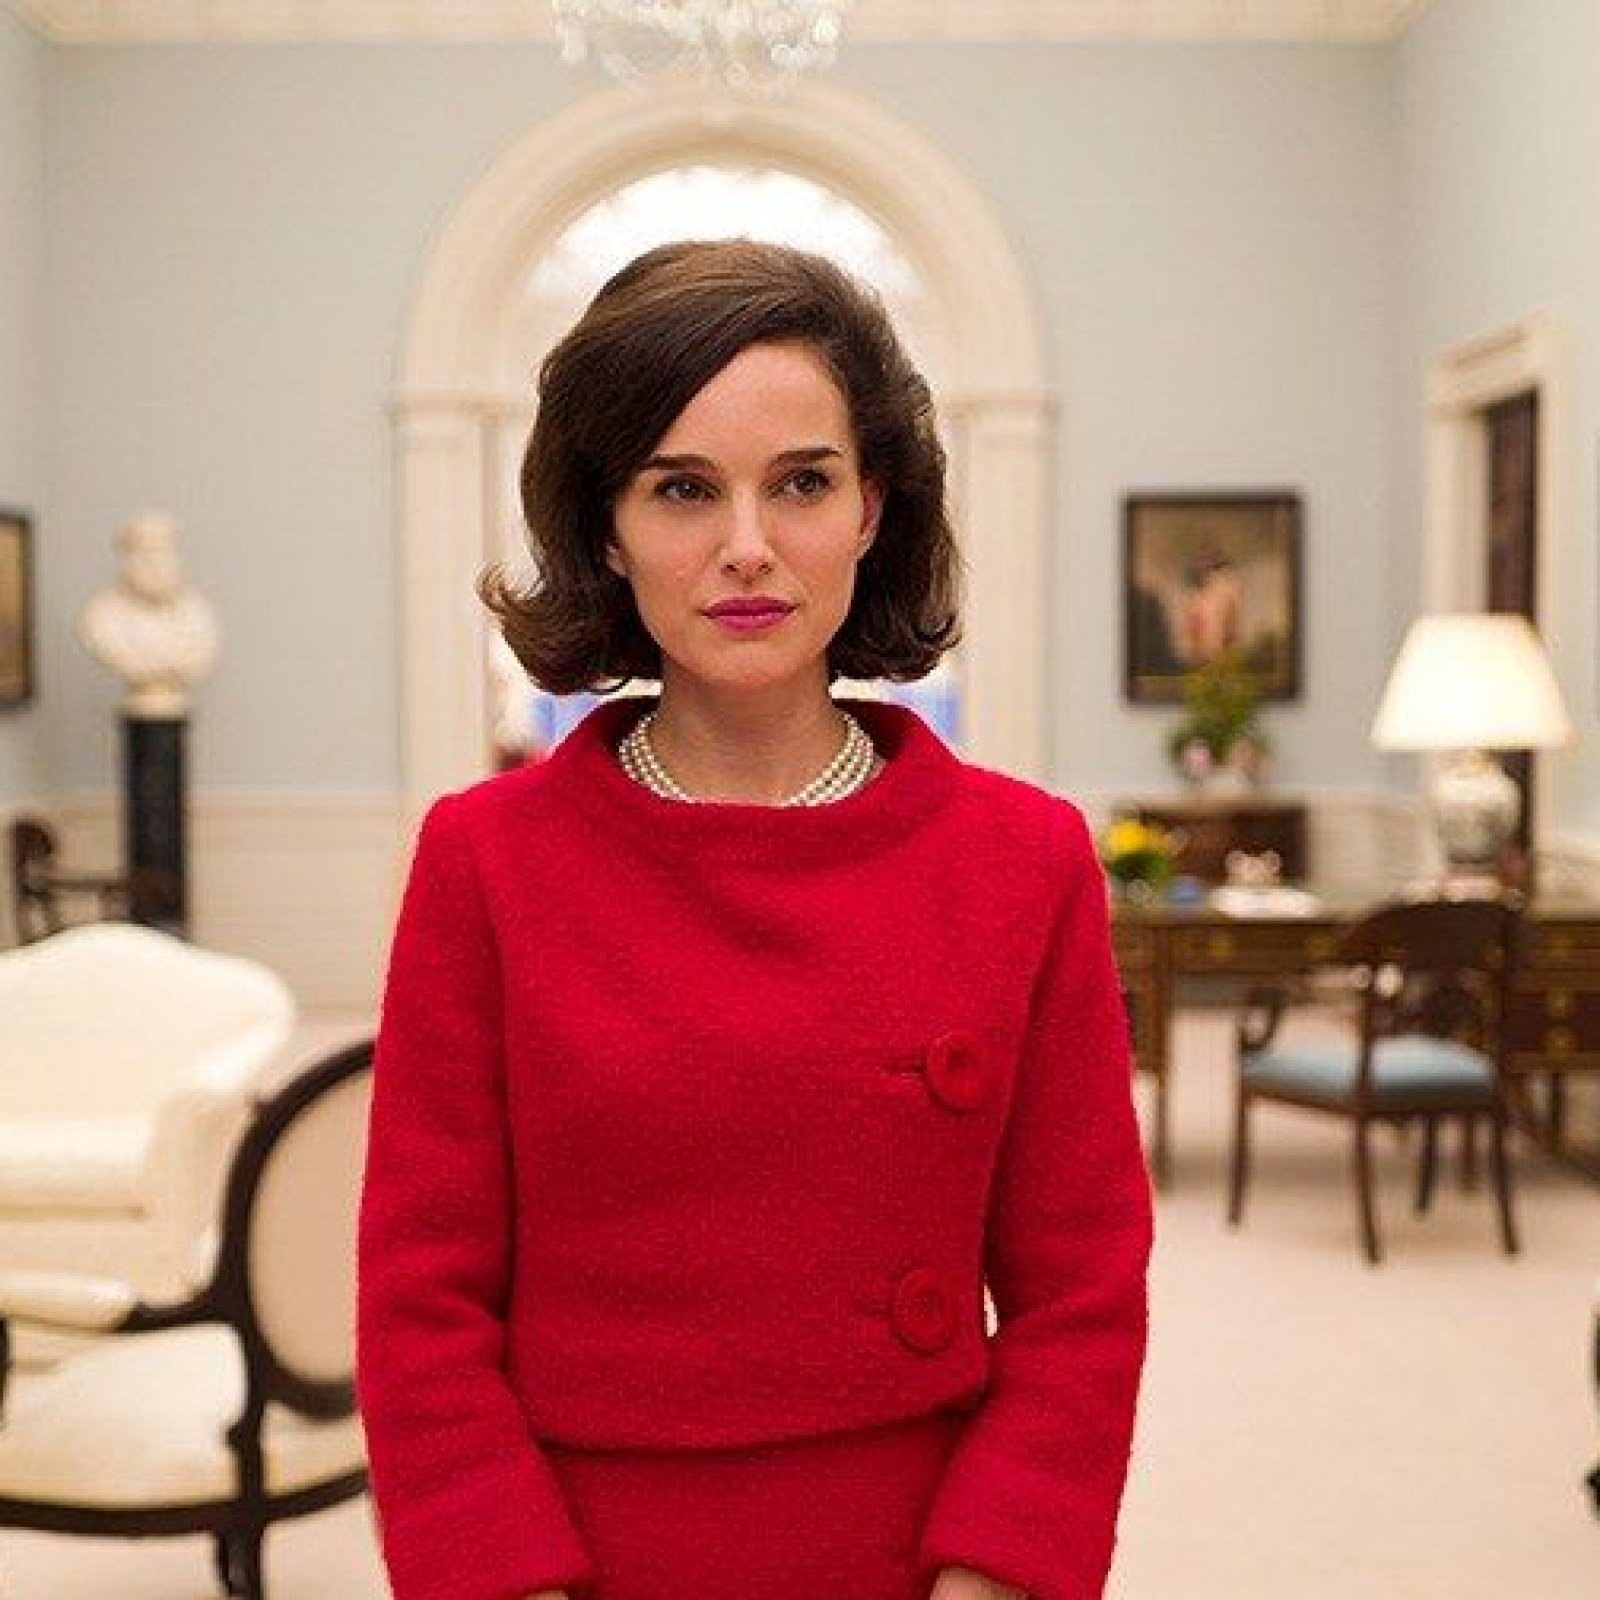 We Asked Dialect Experts to Explain What's Going on With Natalie Portman's  Accent in 'Jackie'